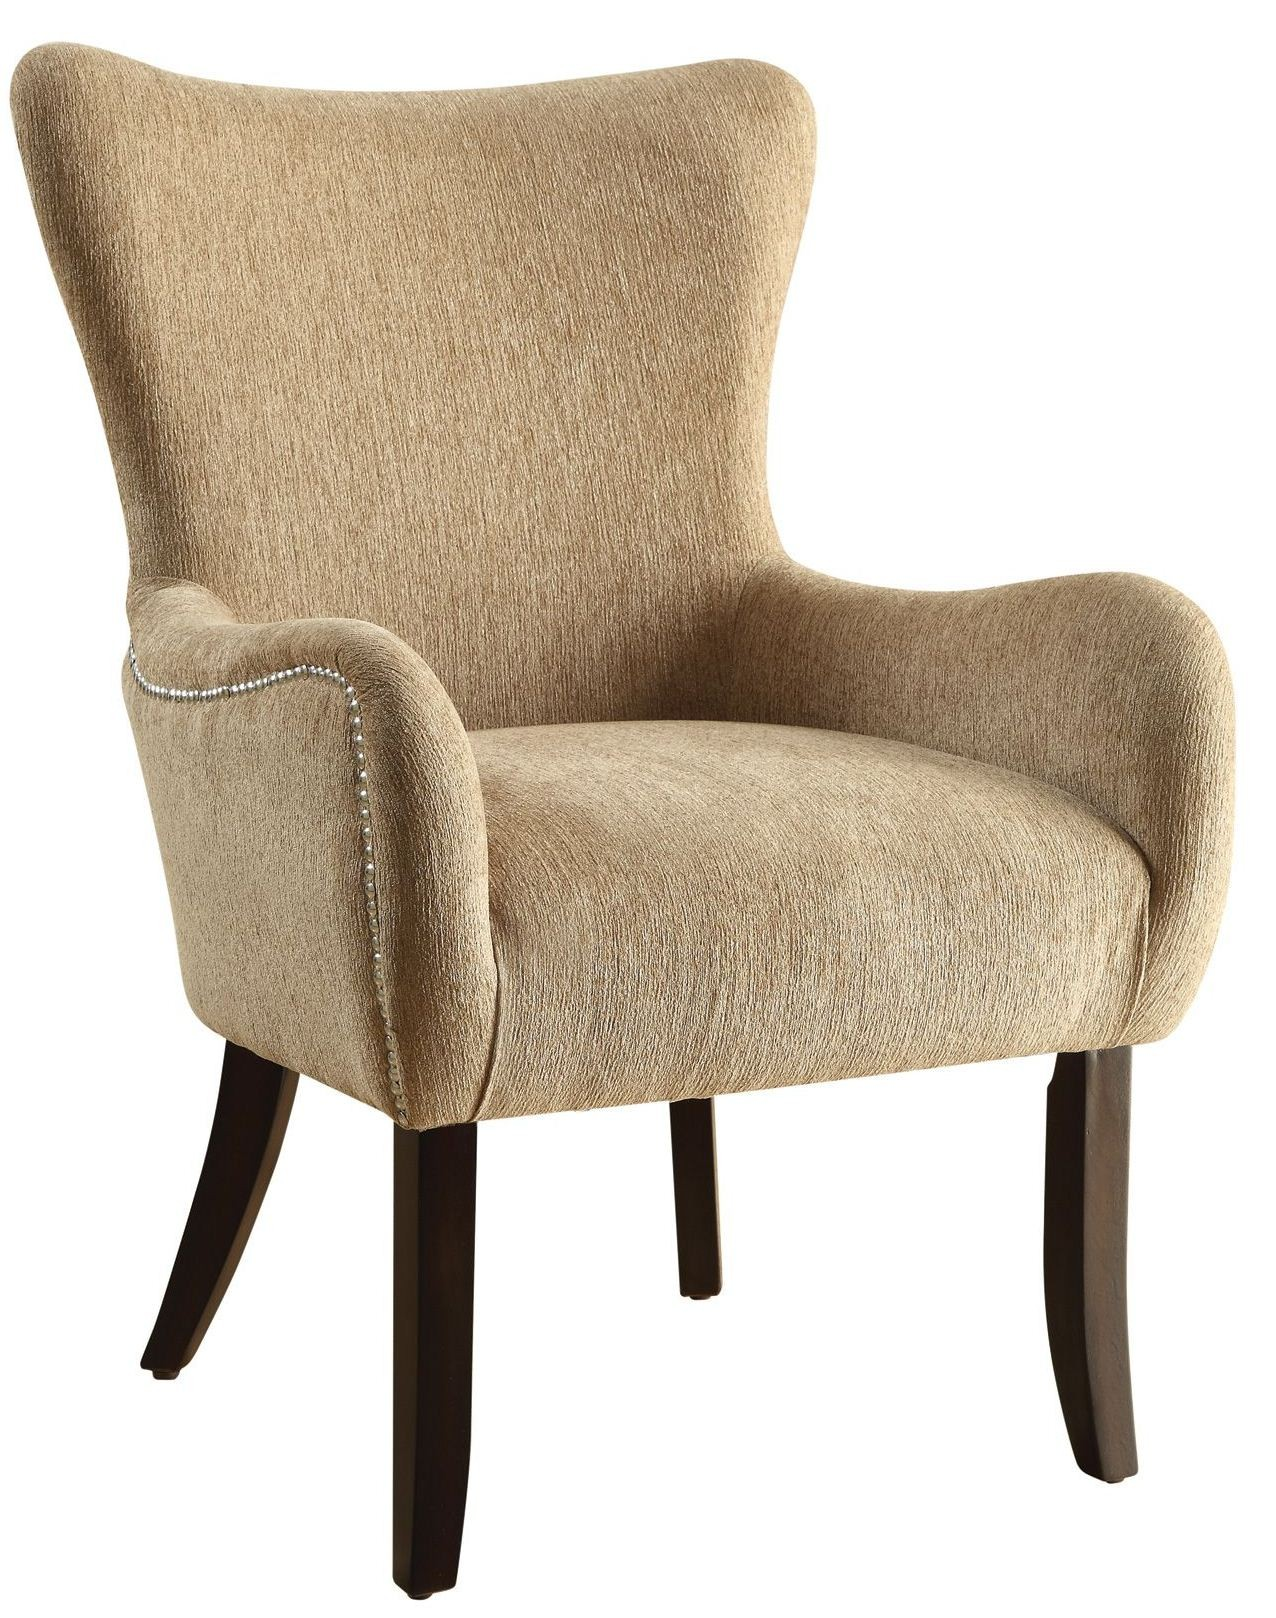 Brown Accent Chairs 902503 Brown Accent Chair From Coaster 902503 Coleman